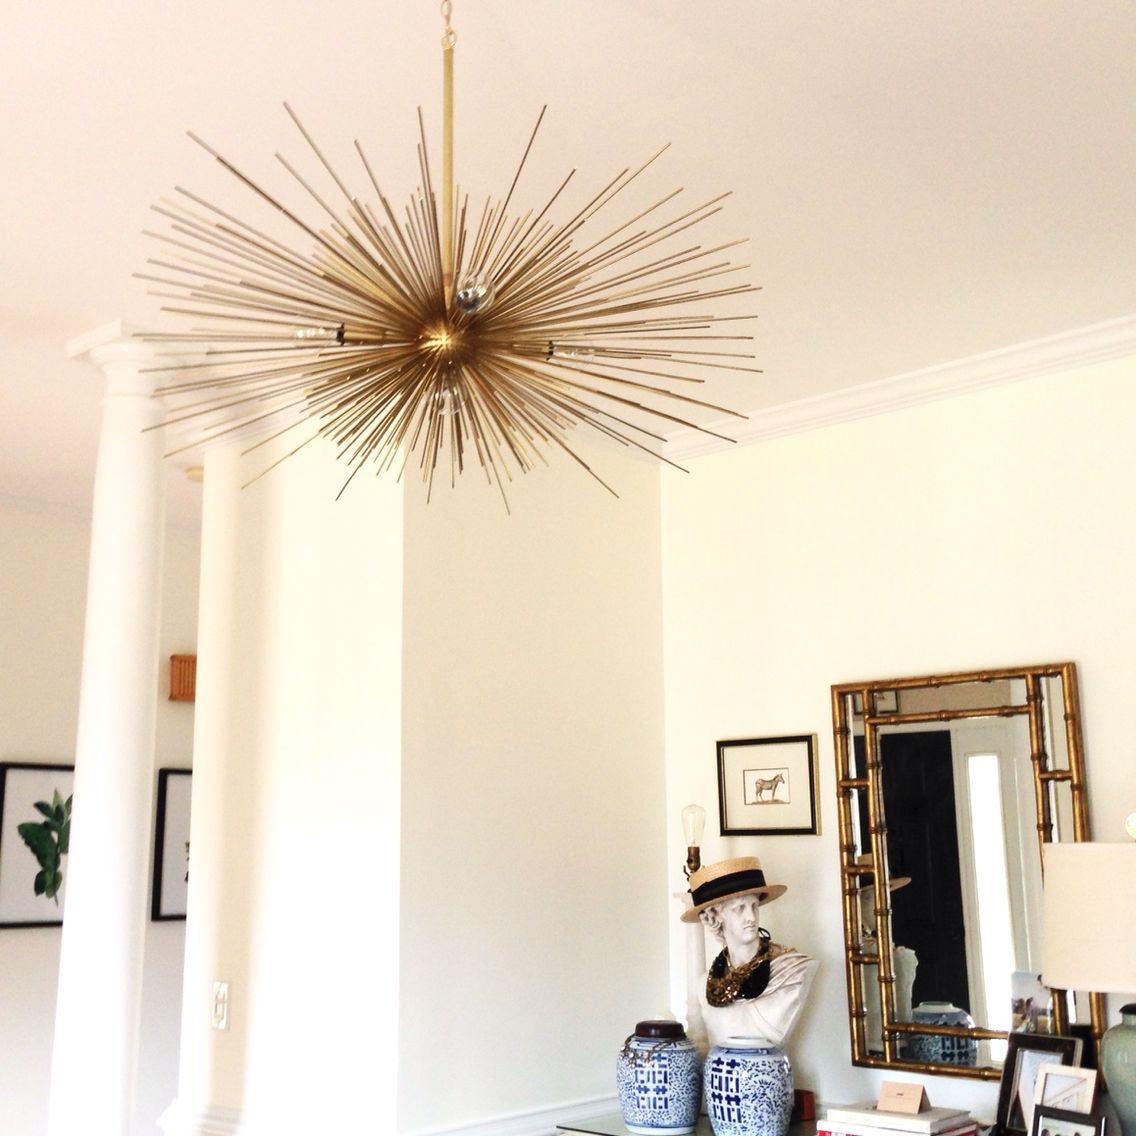 Urchin chandelier by dutton brown in white dining room dining urchin chandelier by dutton brown in white dining room aloadofball Gallery